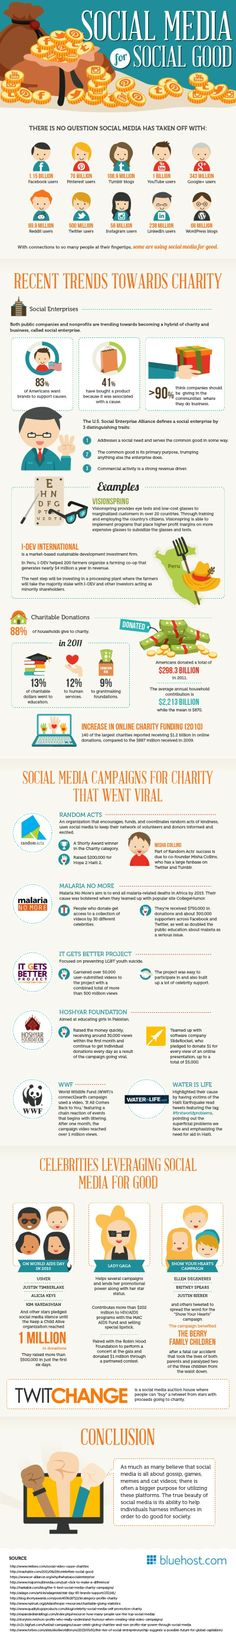 Using Social Media For Social Good (Infographic) #socialmedia #infographic